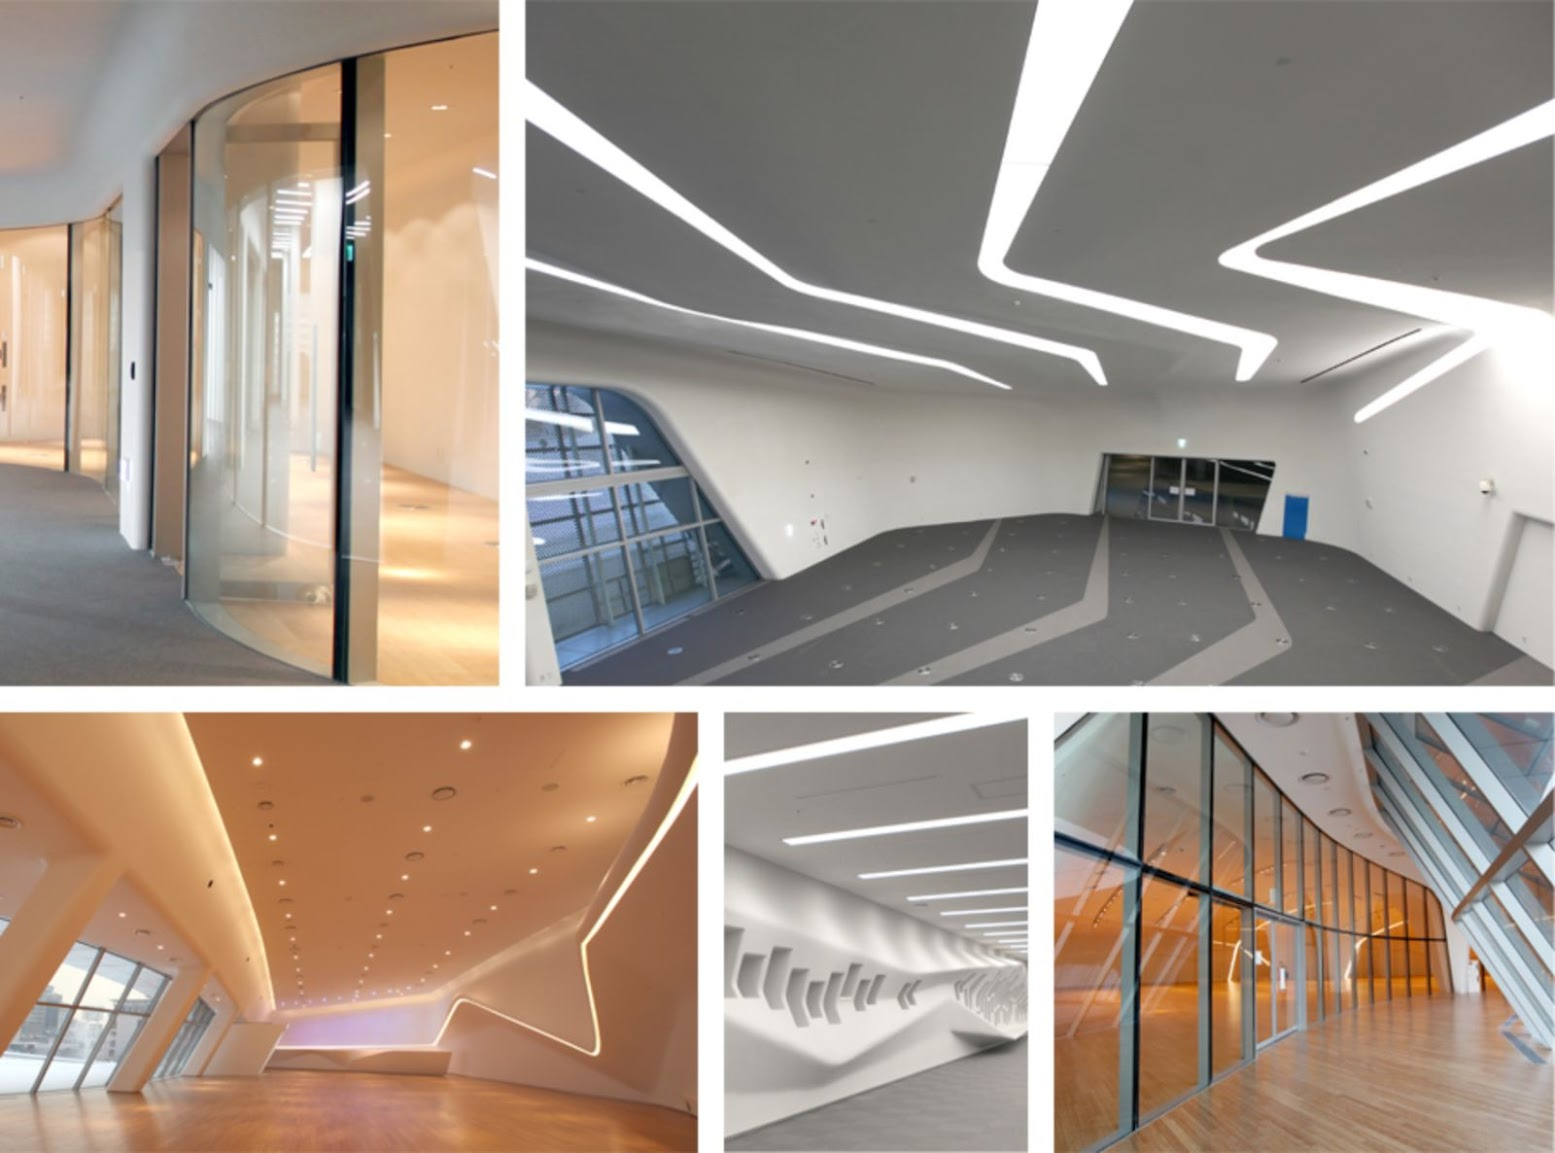 Open Dongdaemun Design Park Plaza by Zaha Hadid